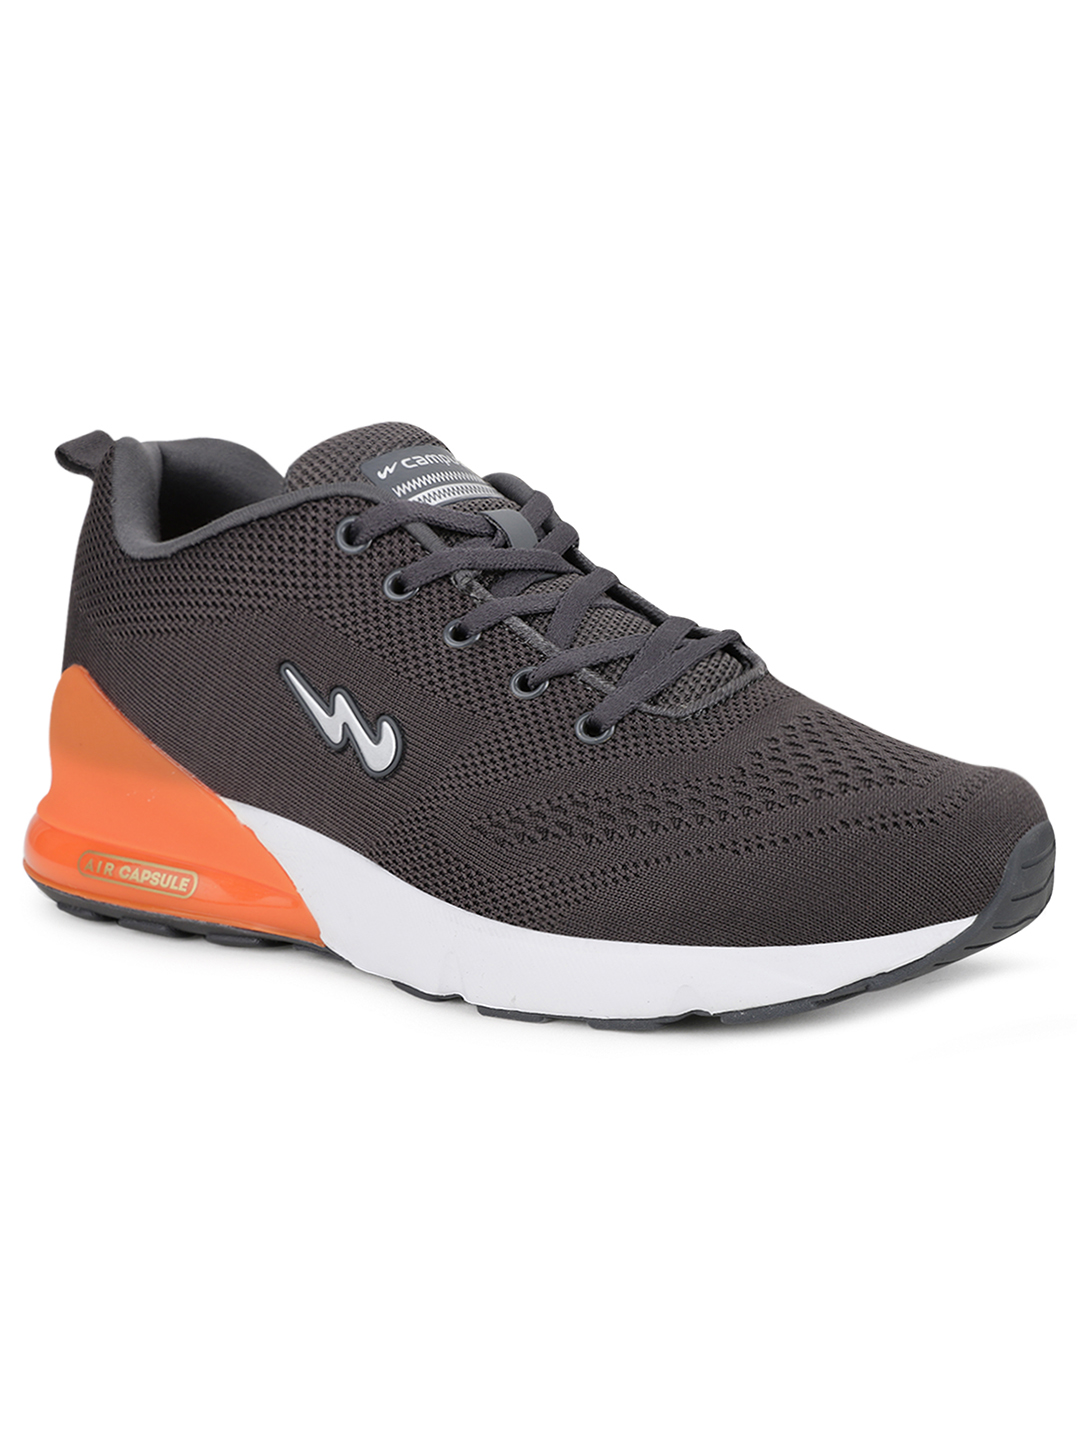 Campus Shoes   Grey North Plus Running Shoes